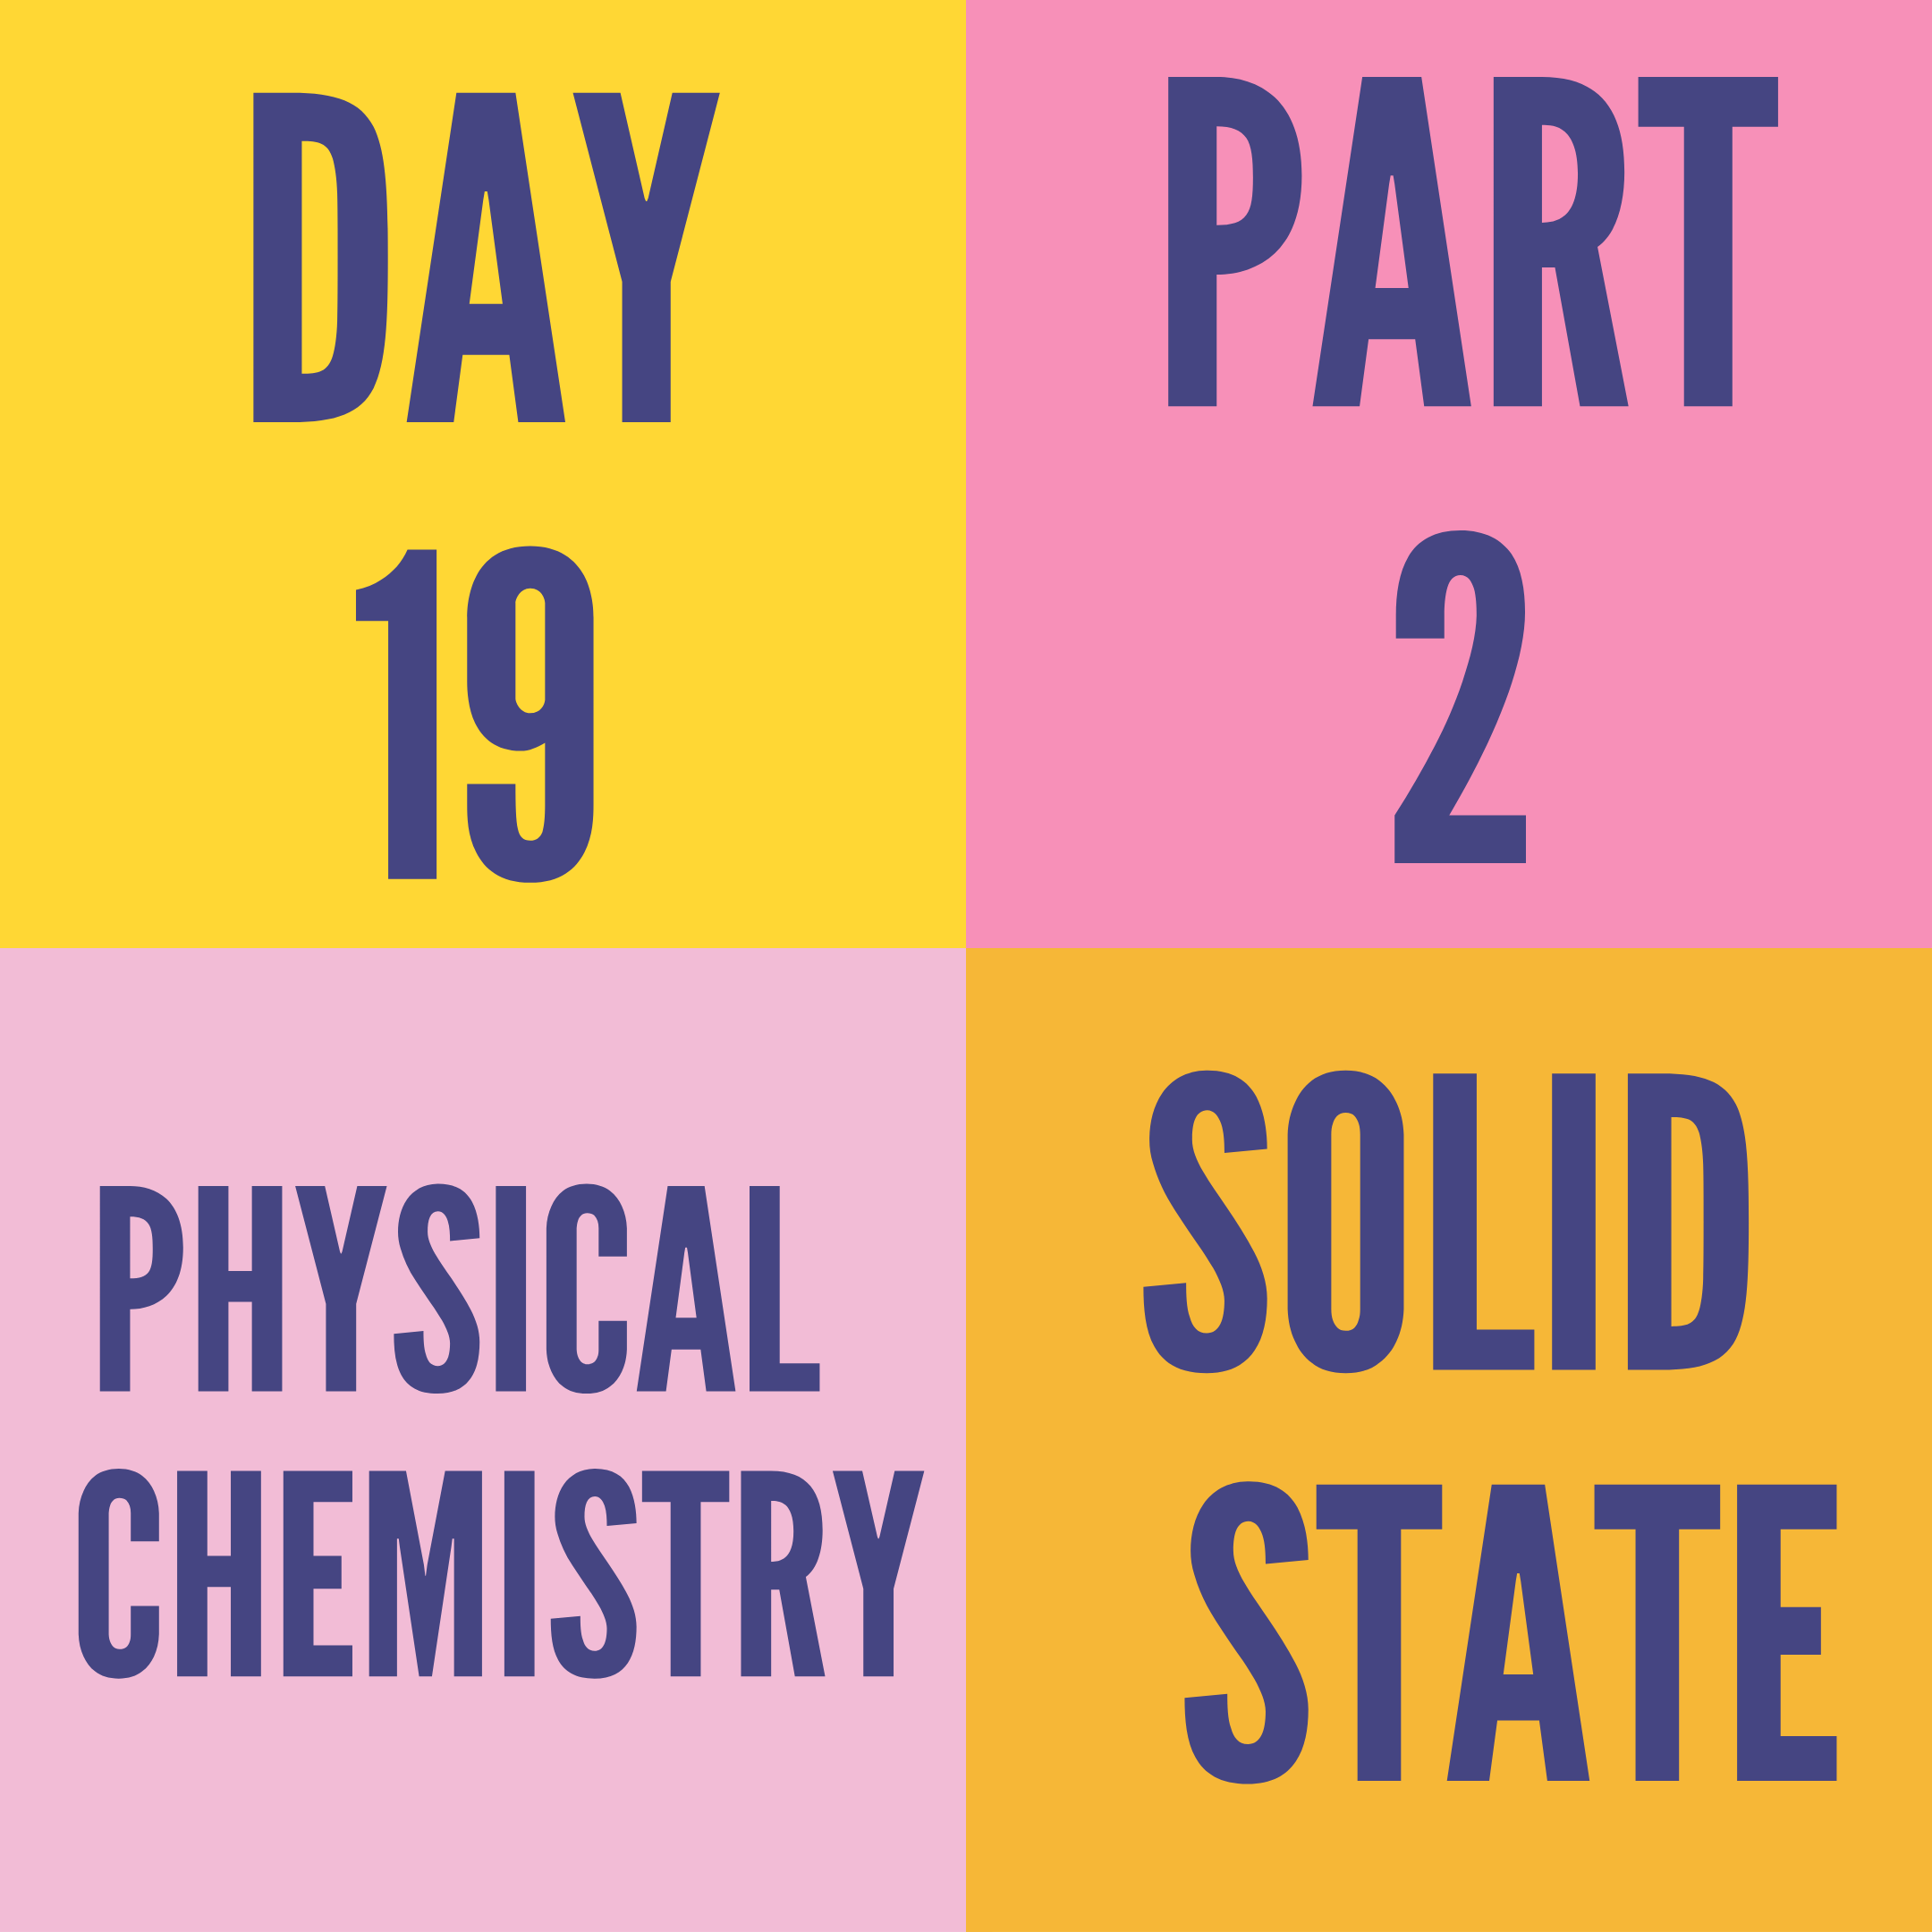 DAY-19 PART-2 SOLID STATE